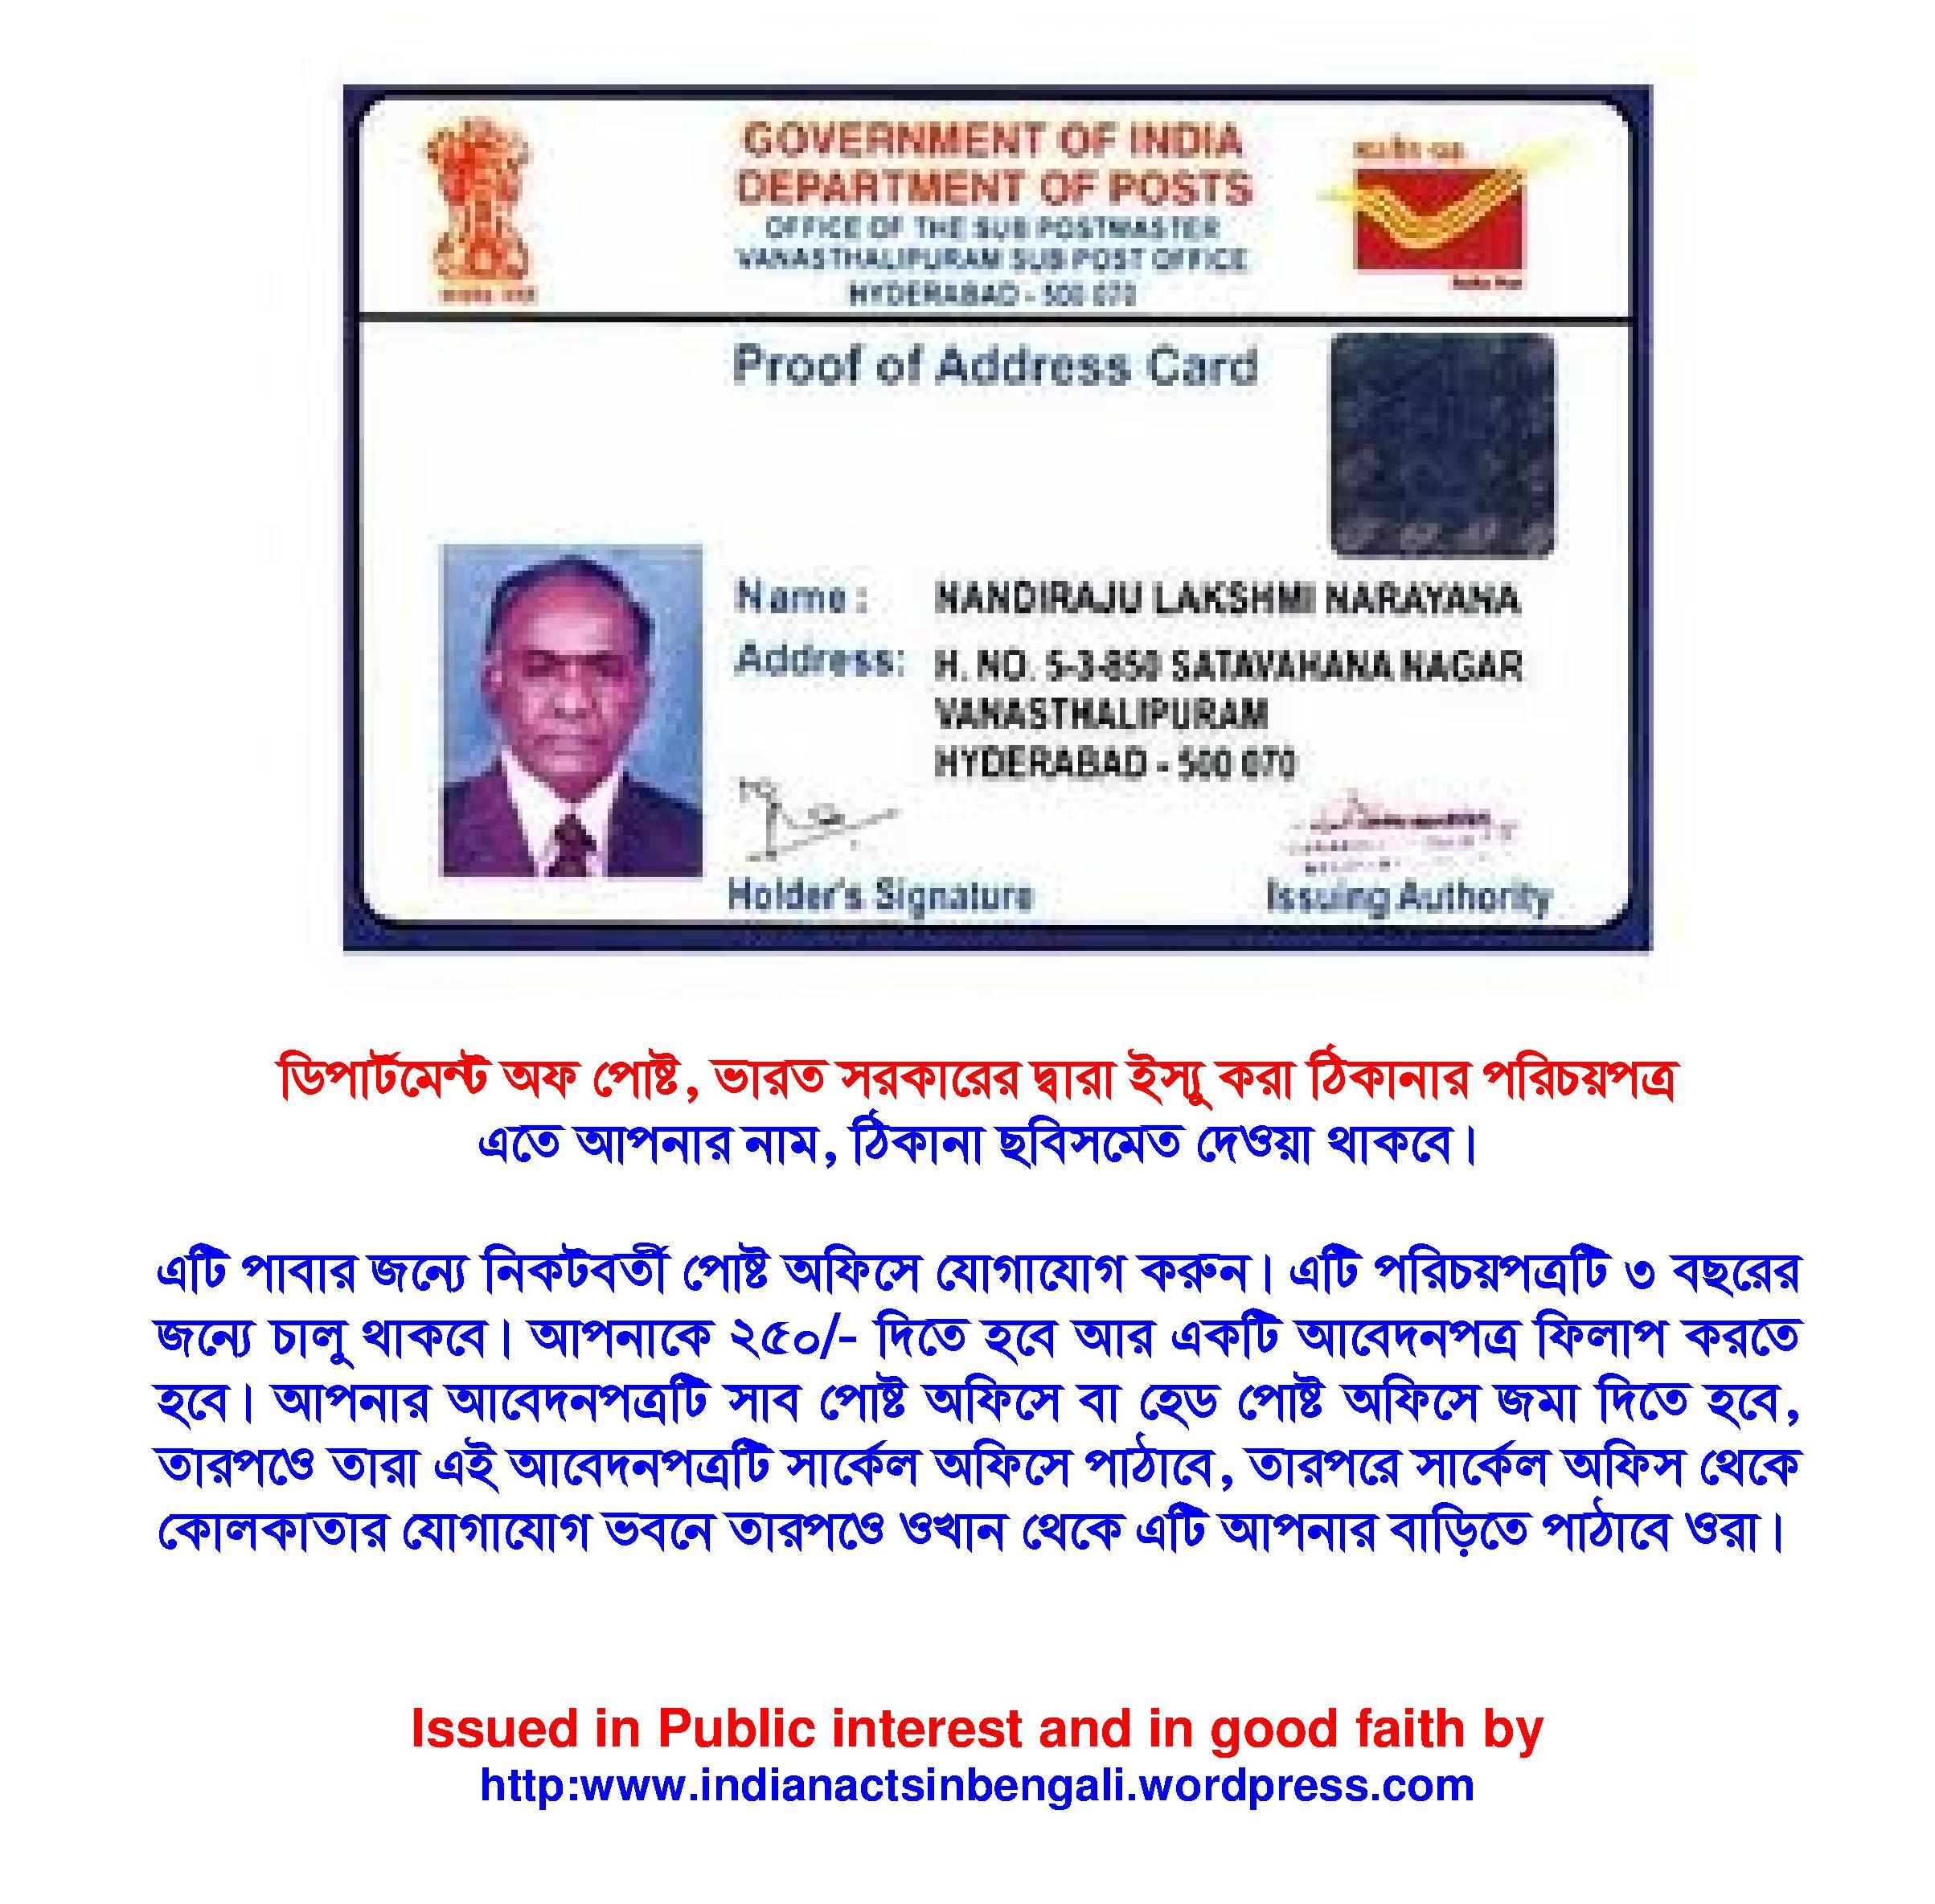 Indian Post Office issue Identity Cards to Citizens of India ...